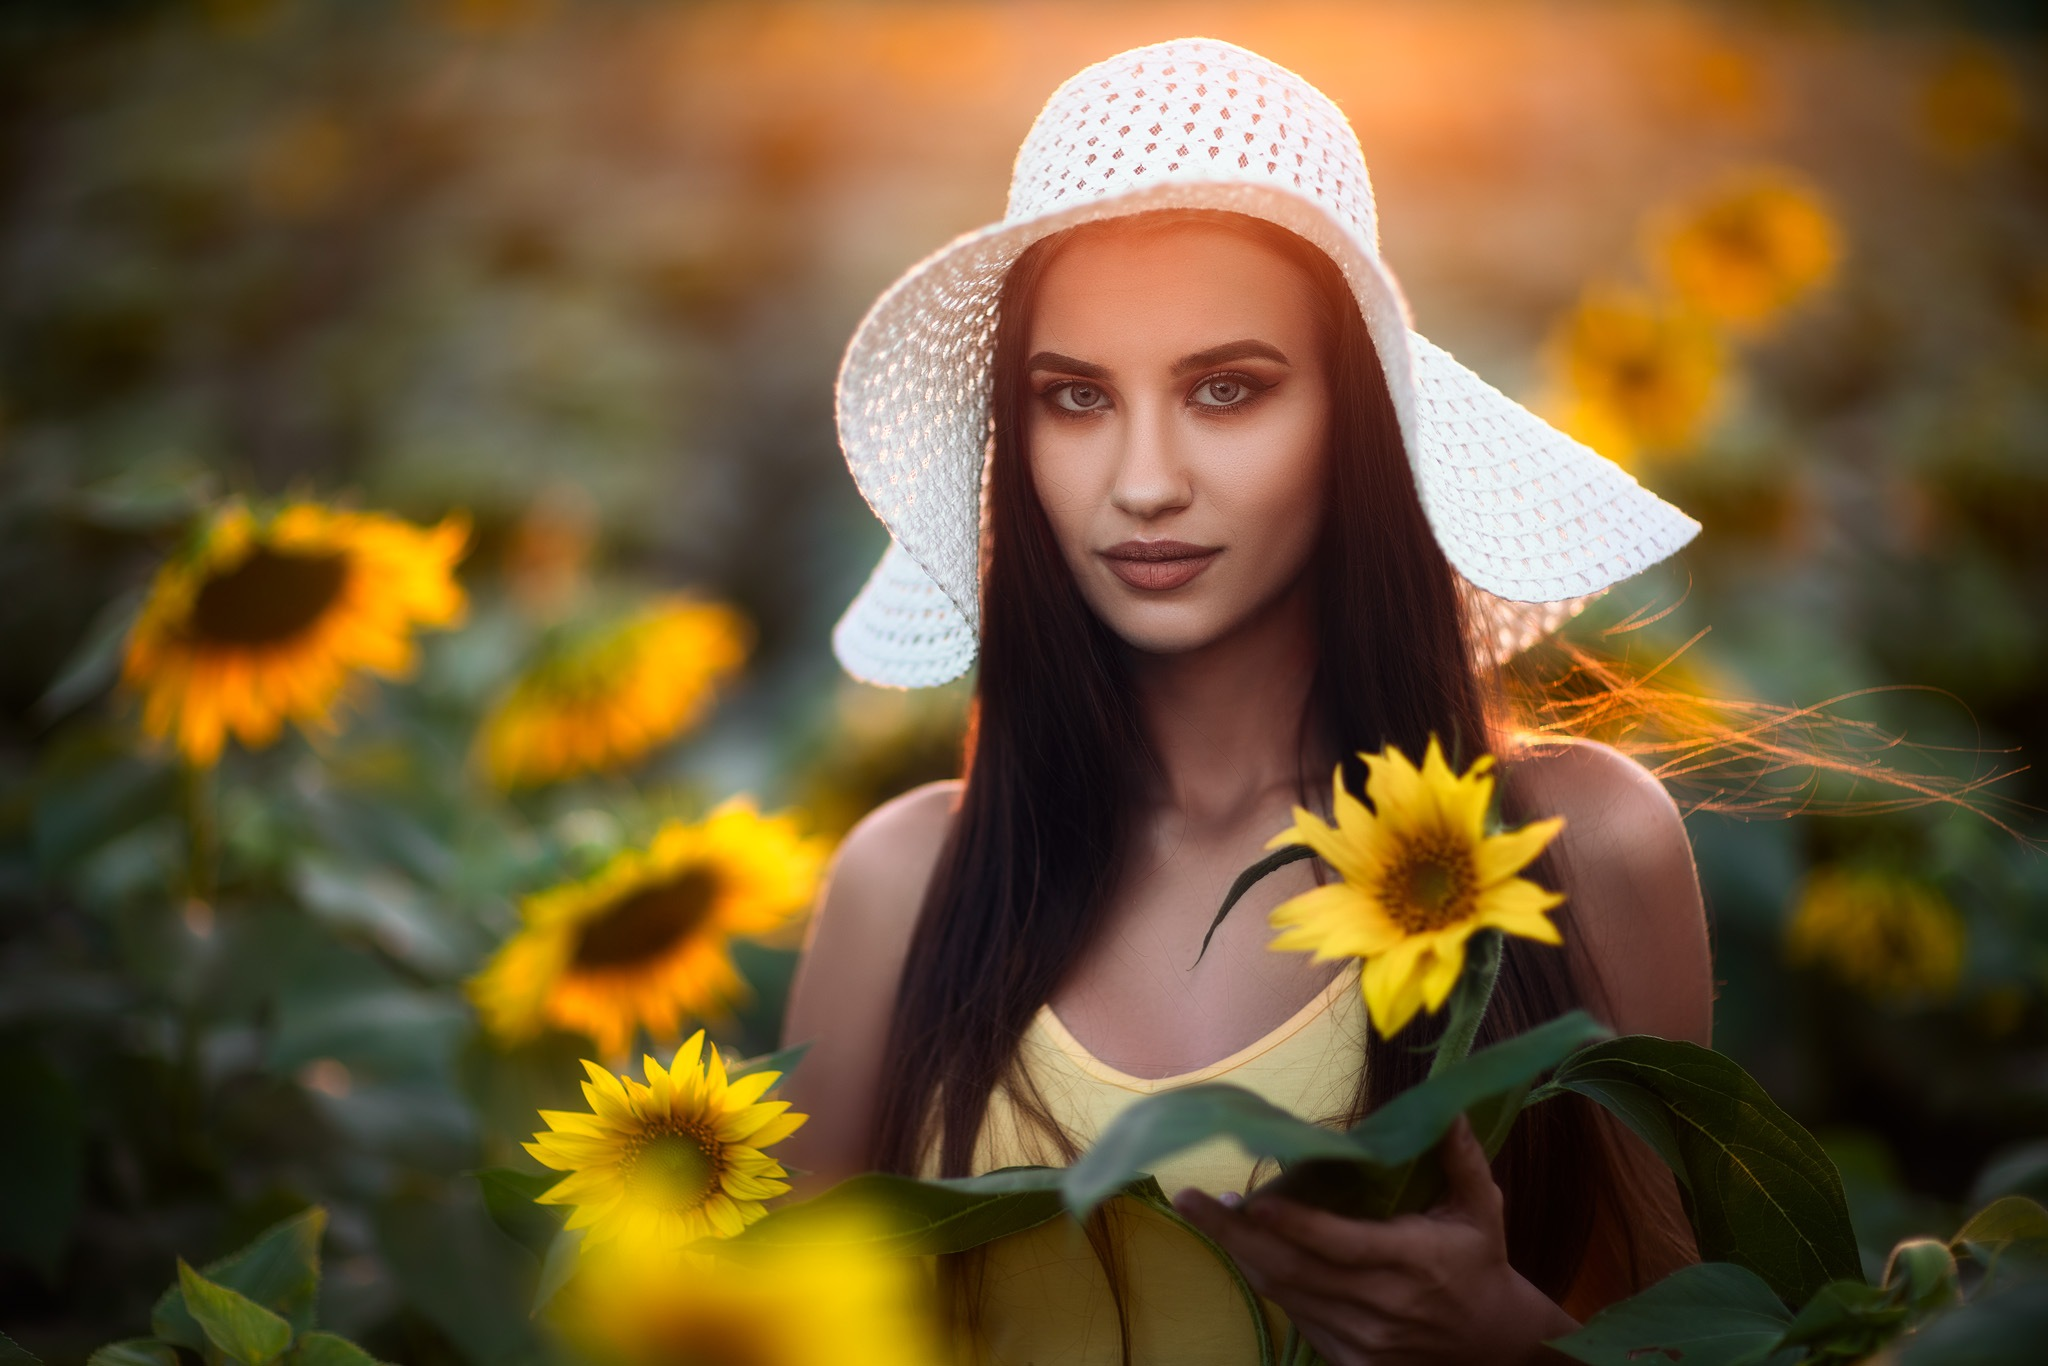 Potrait of P. with Sunflowers by Chavdar Dimitrov